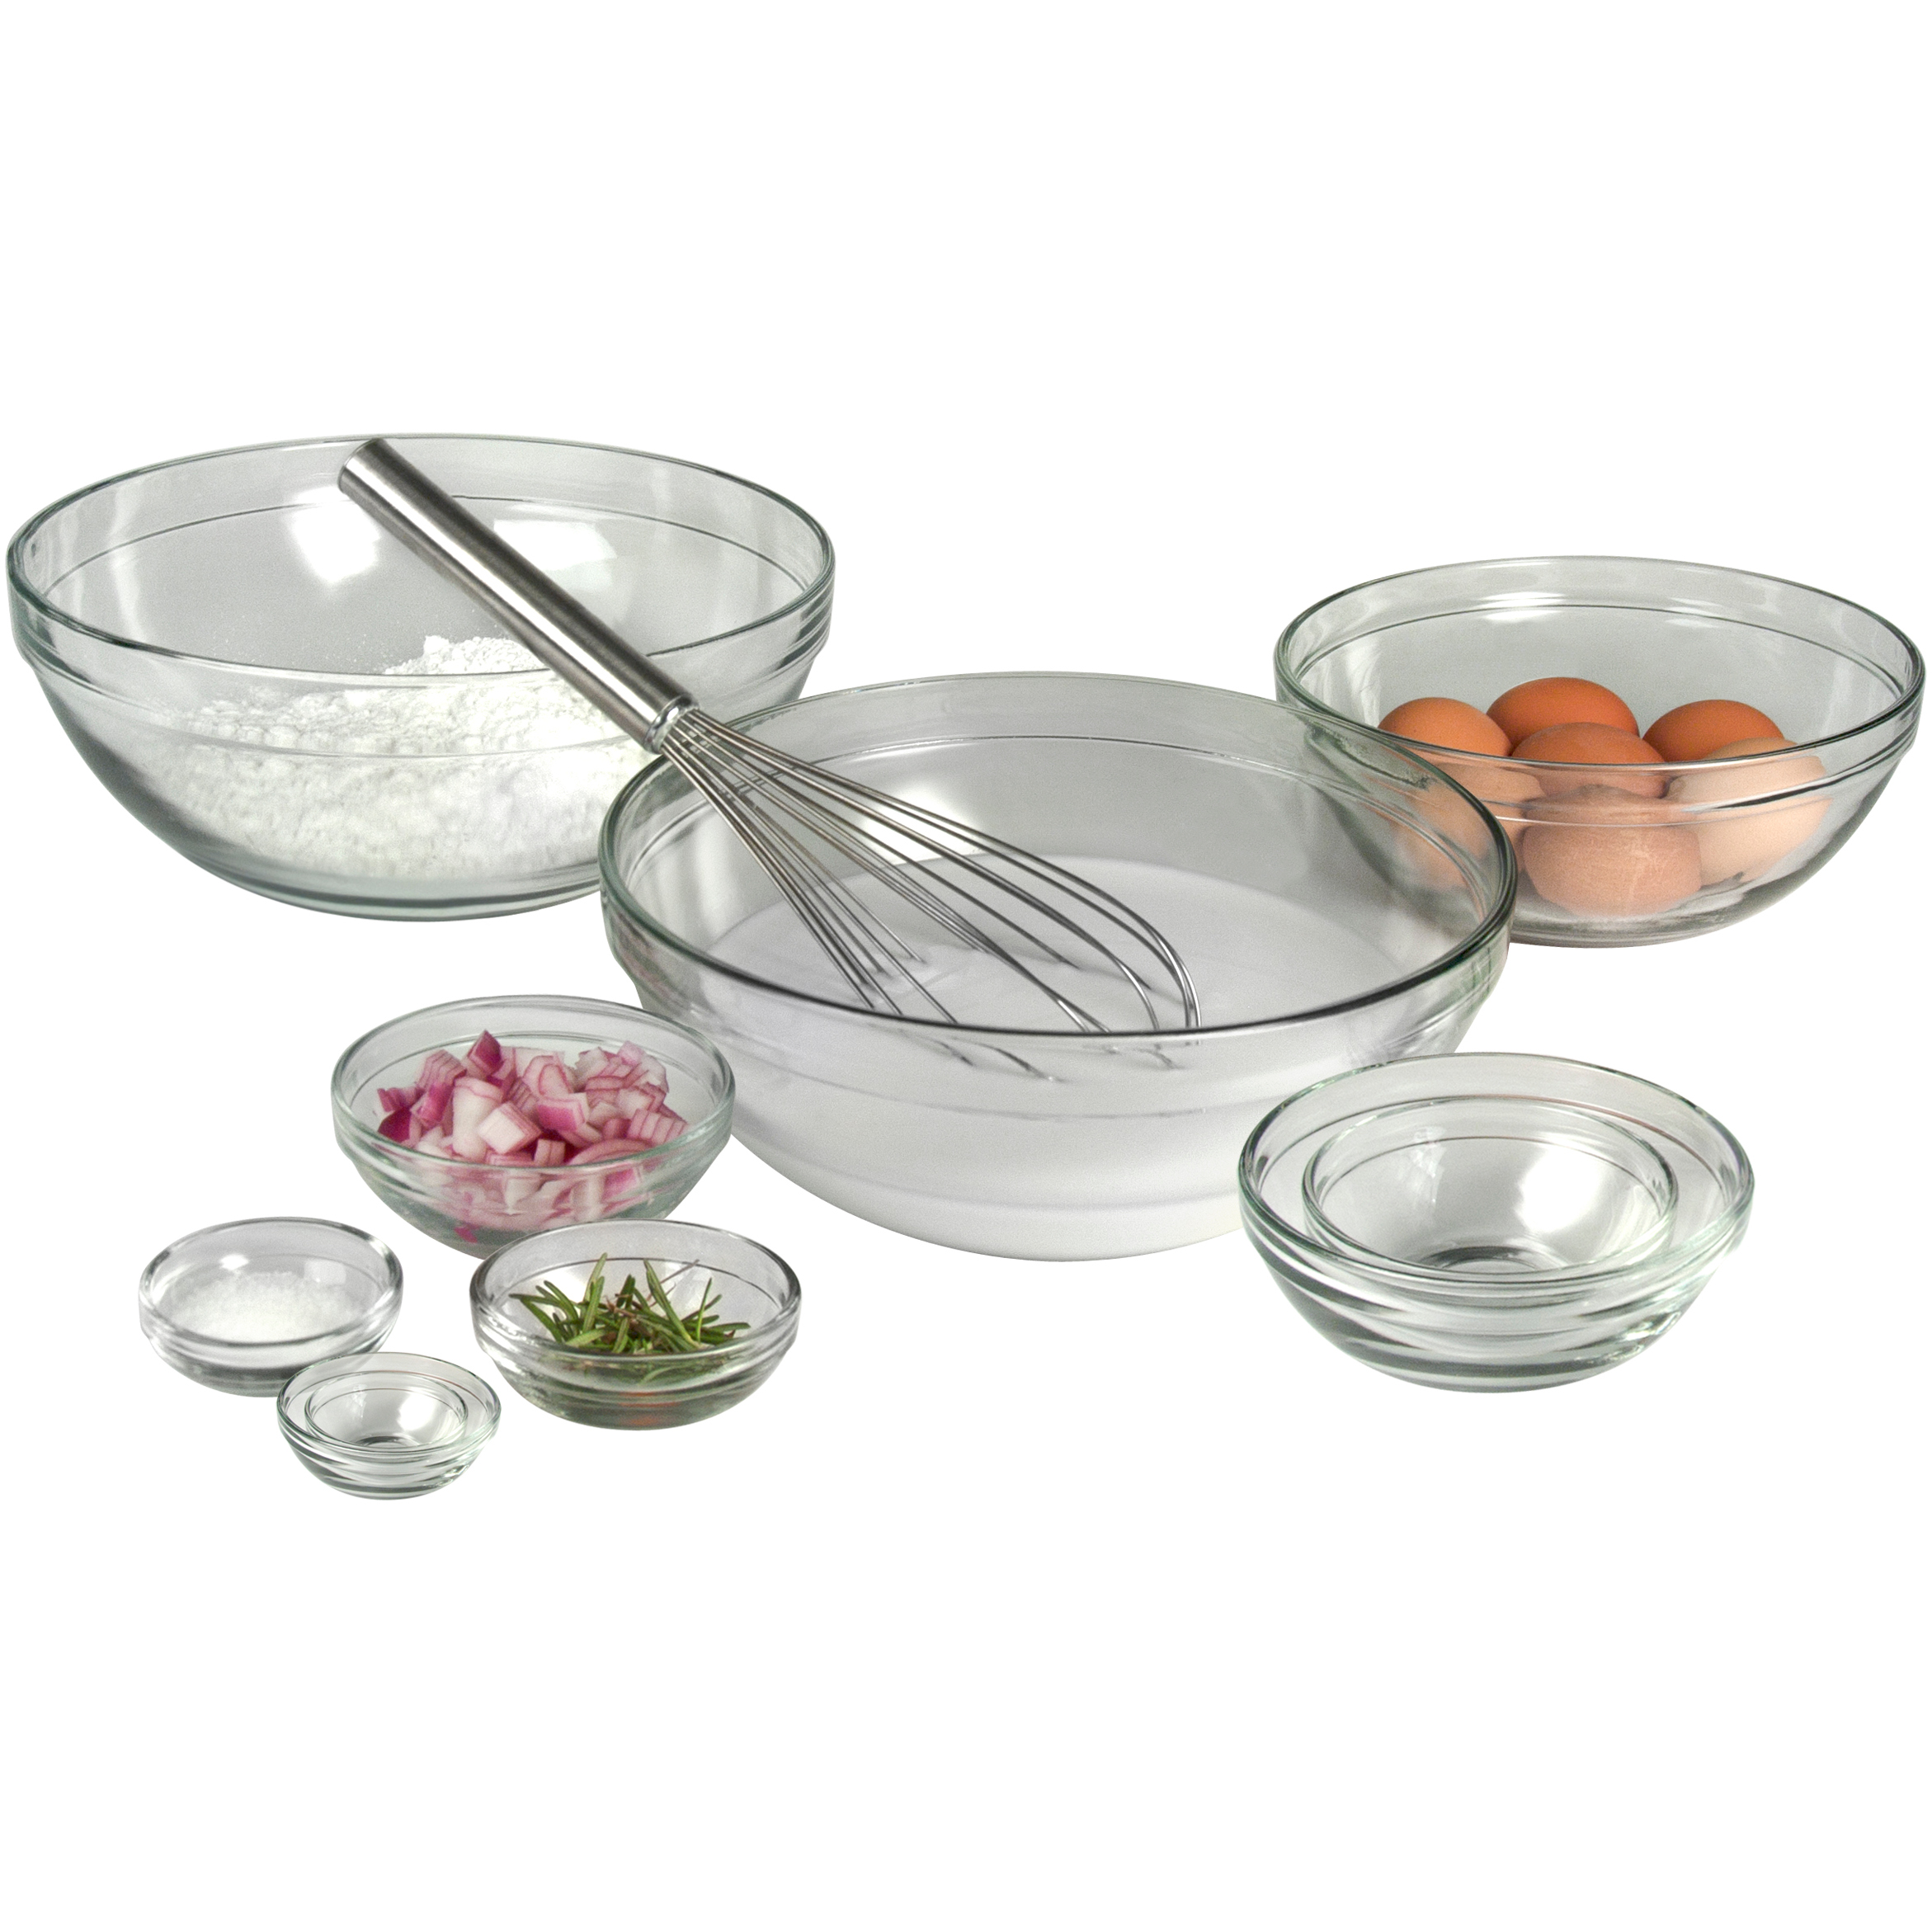 Artland 10 Piece Glass Mixing Bowl Set